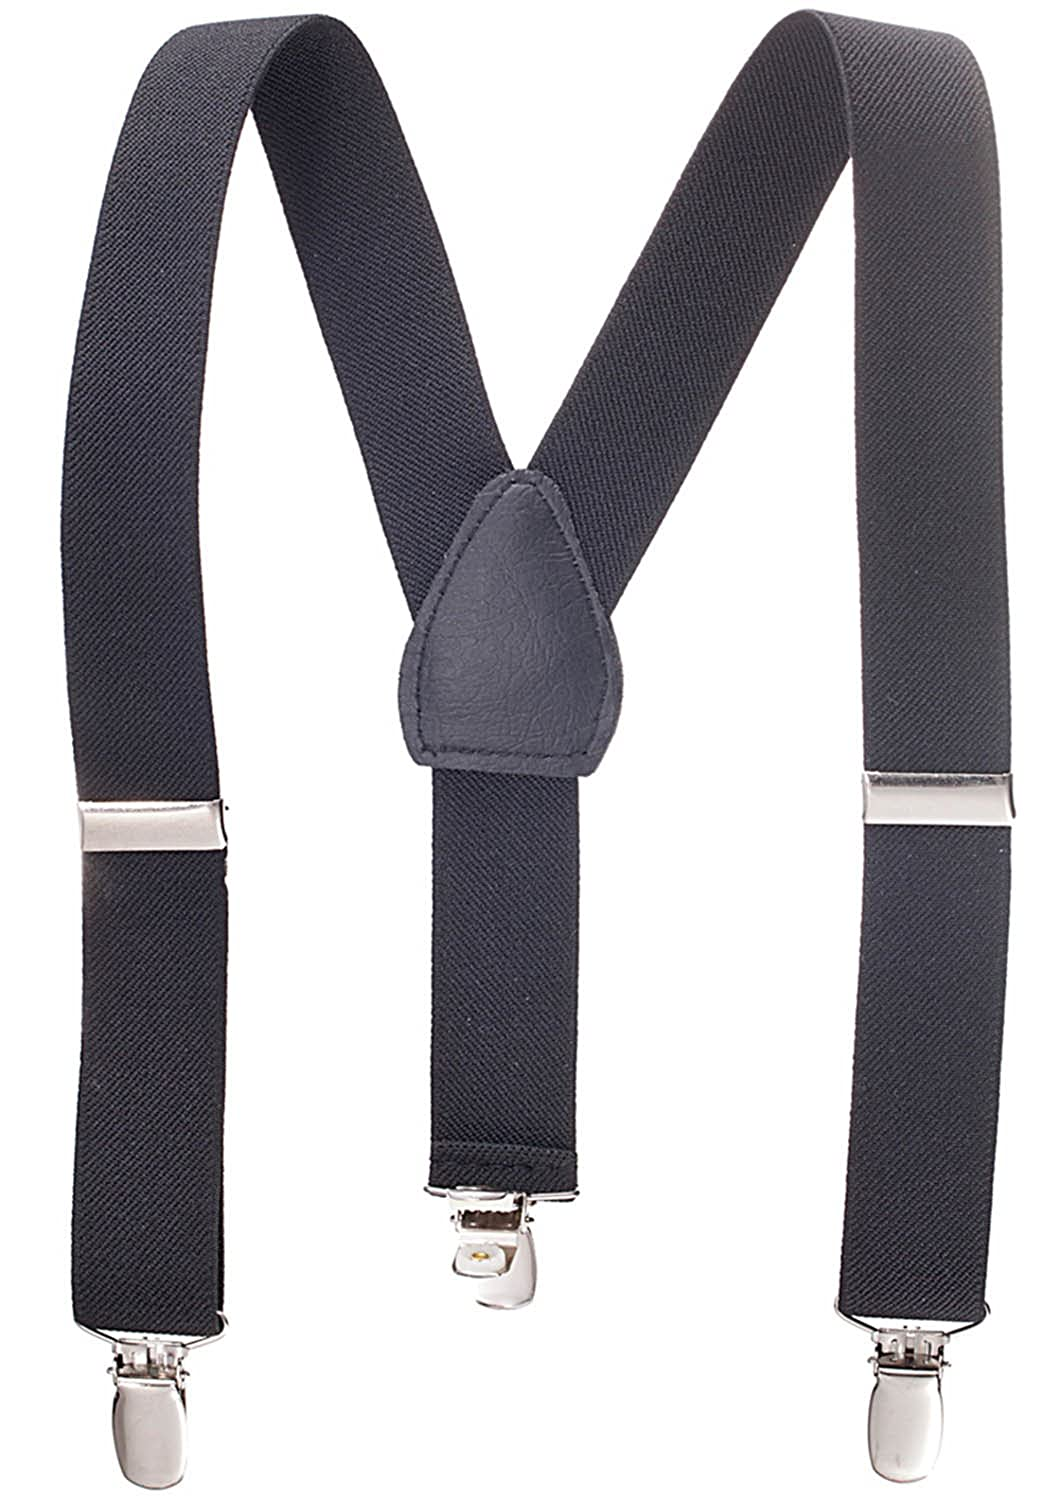 9edc4d1a8daf Amazon.com  Kids and Baby Elastic Adjustable Solid Color Suspenders  (Available in 3 sizes and 27 colors)  Apparel Suspenders  Toys   Games